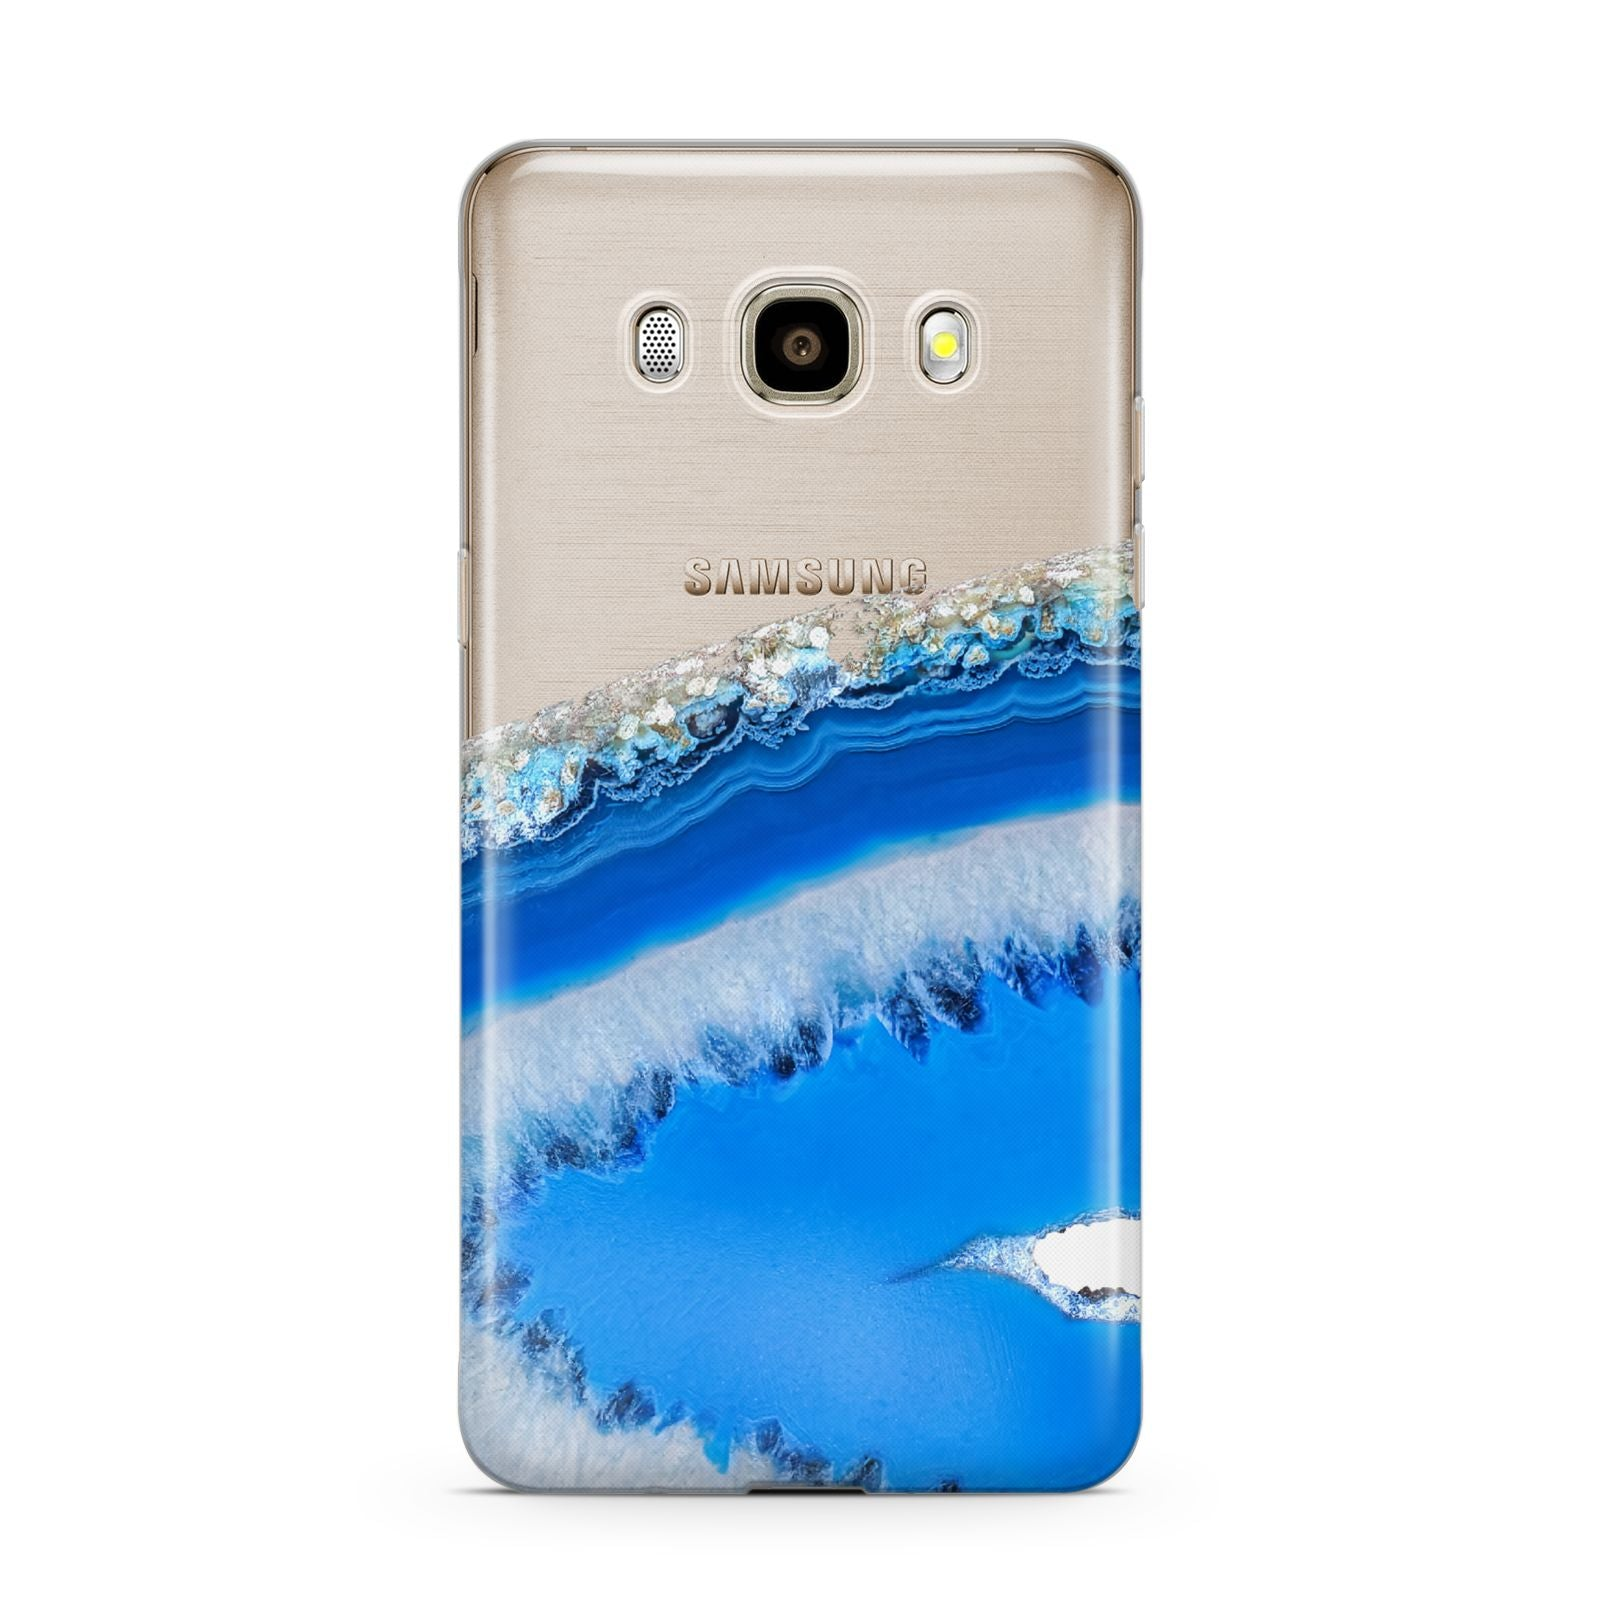 Agate Blue Samsung Galaxy J7 2016 Case on gold phone